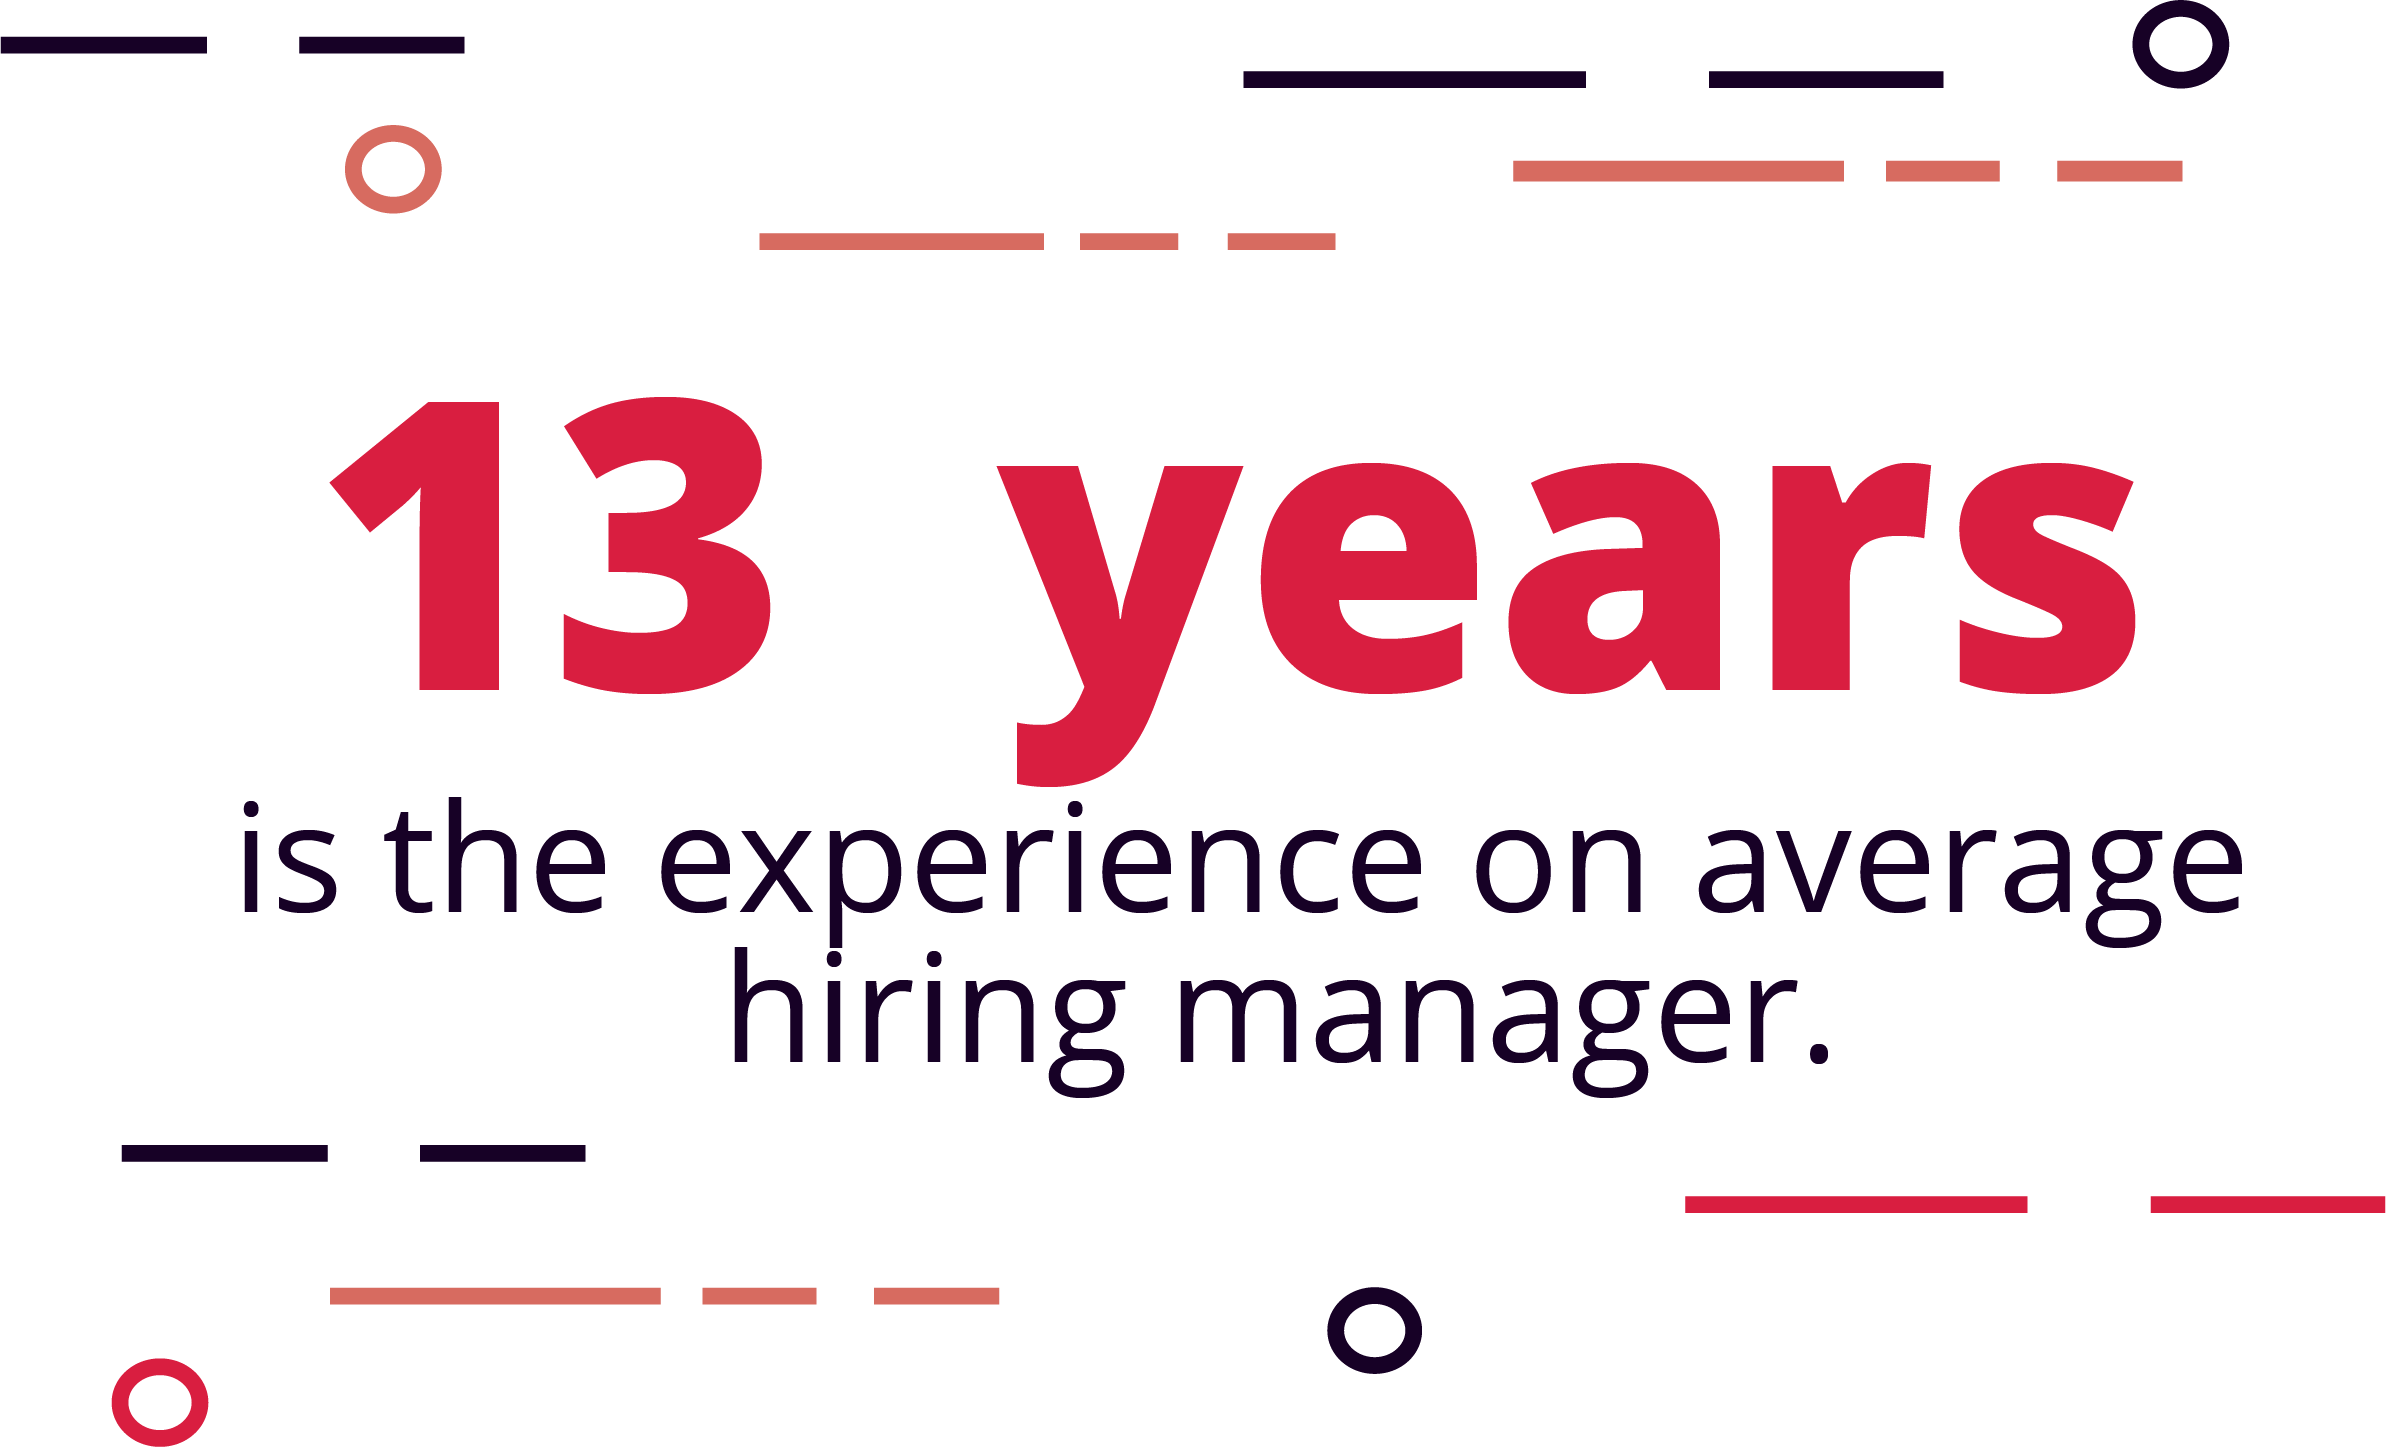 The Average Hiring Manager Has 13 Years of Experience